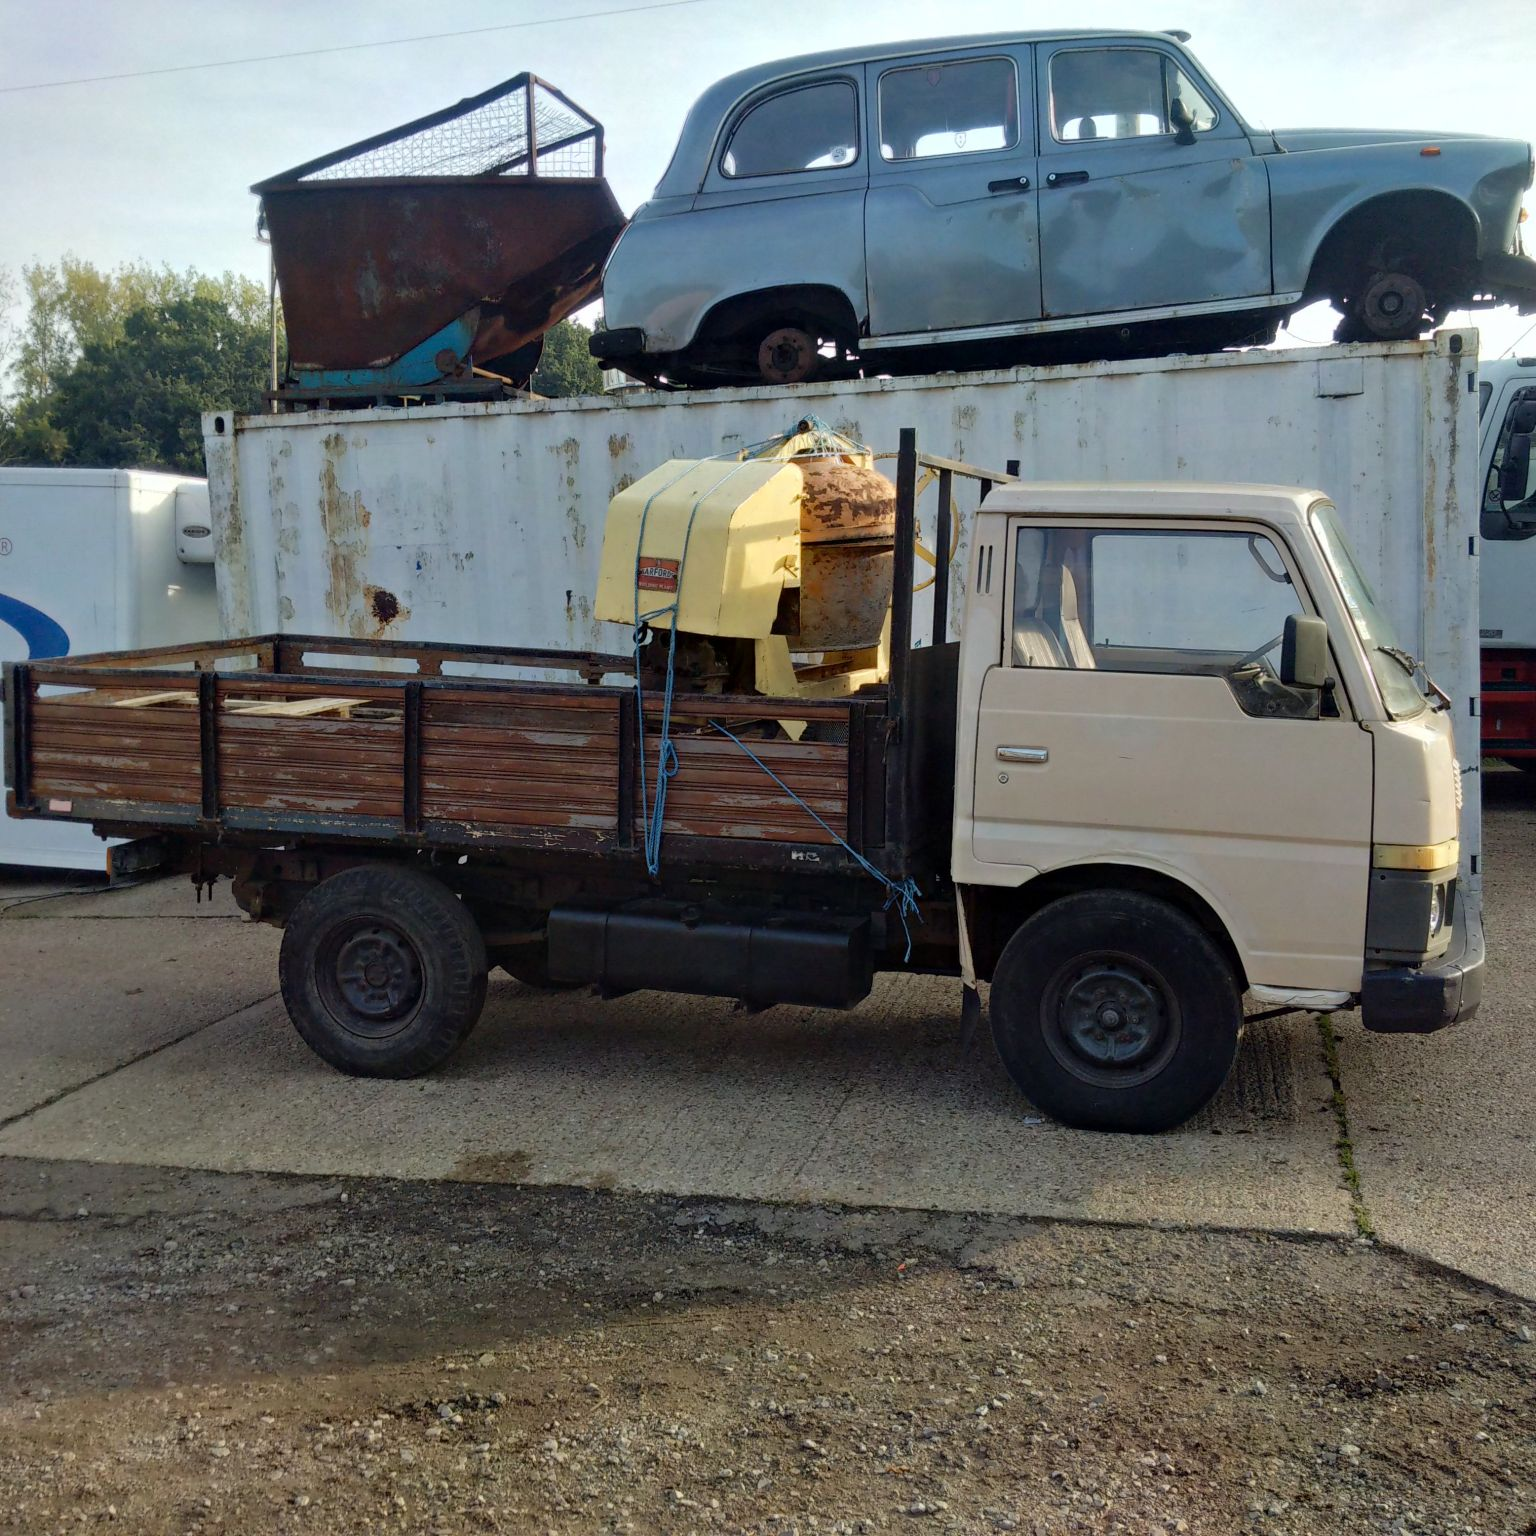 Left Hand Drive Nissan Cabstar F22 25 Diesel Single Wheel 35 Ton Cabster 4x4 Img 20161015 095437 Hdr 095450 095508 095520